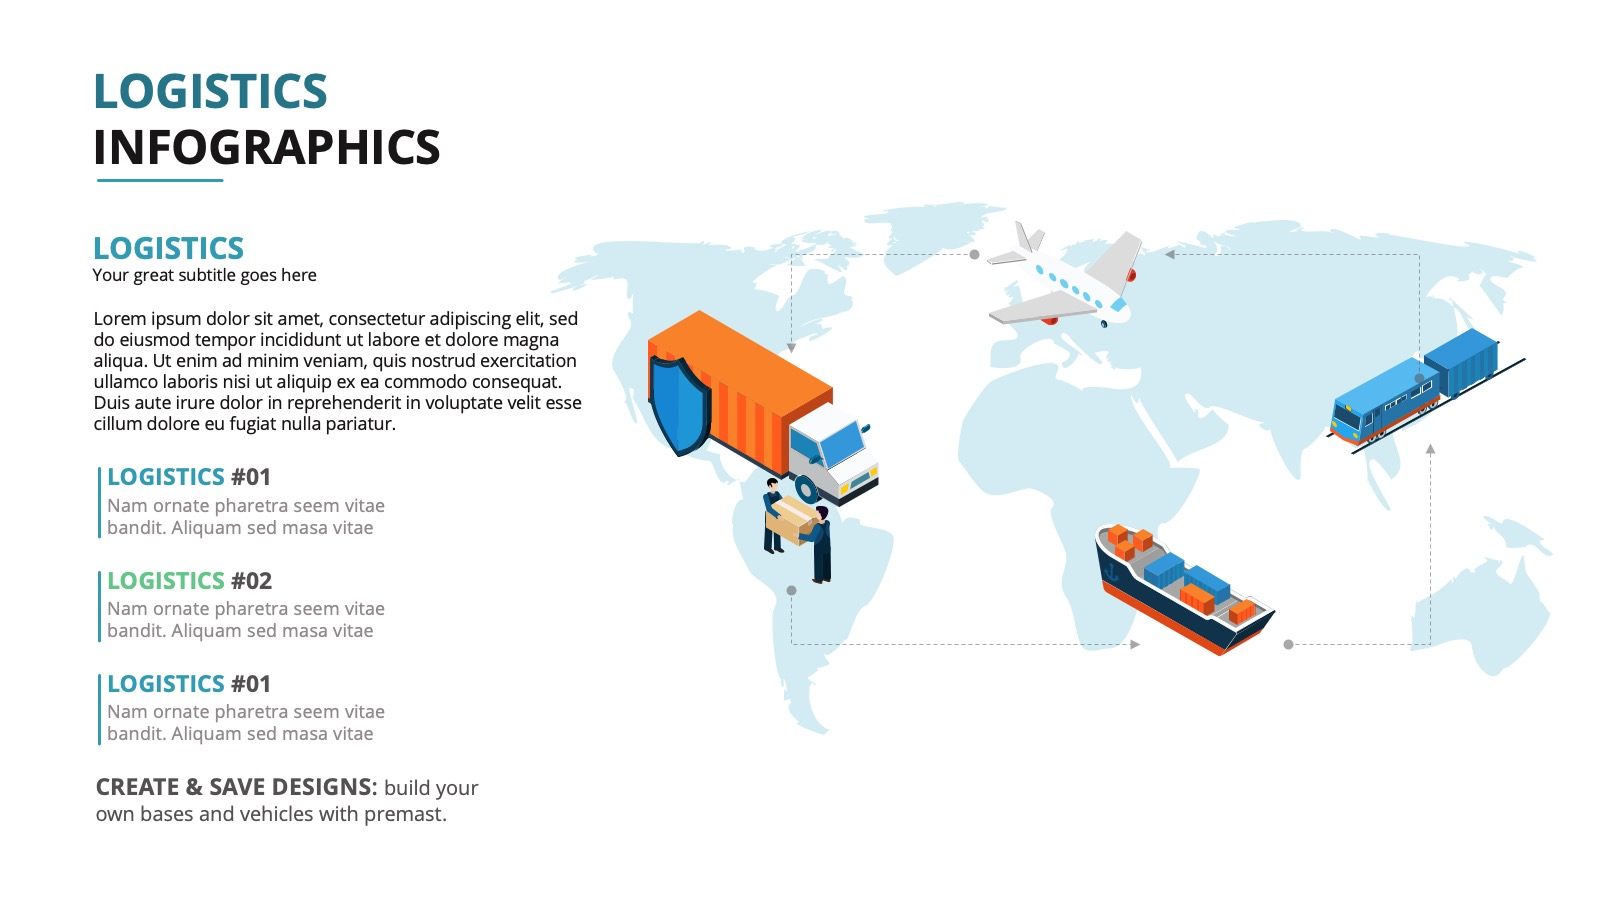 LOGISTIC INFOGRAPHIC II